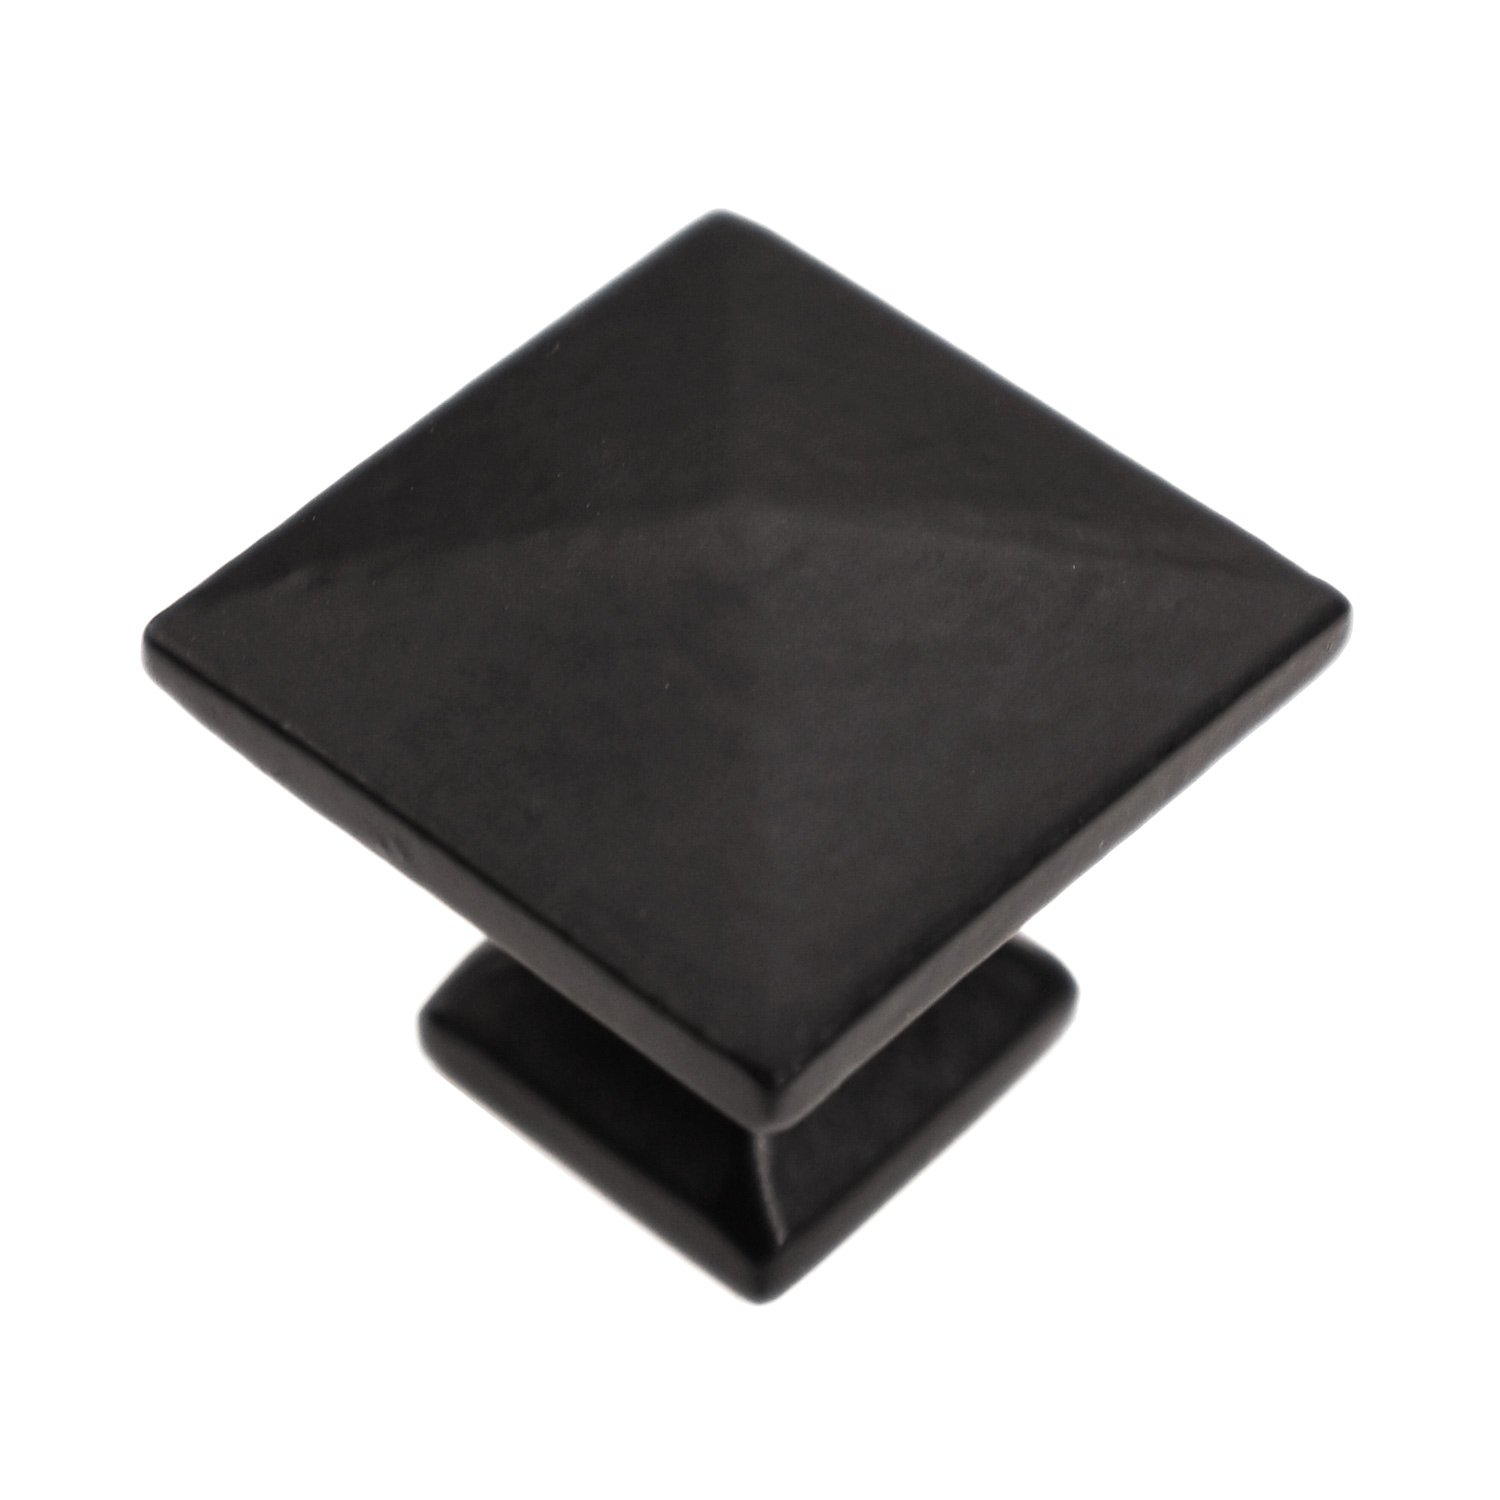 """Iron Valley - 1-1/4"""" Modern Square Cabinet Knob - Pack of 10 - Solid Cast Iron"""